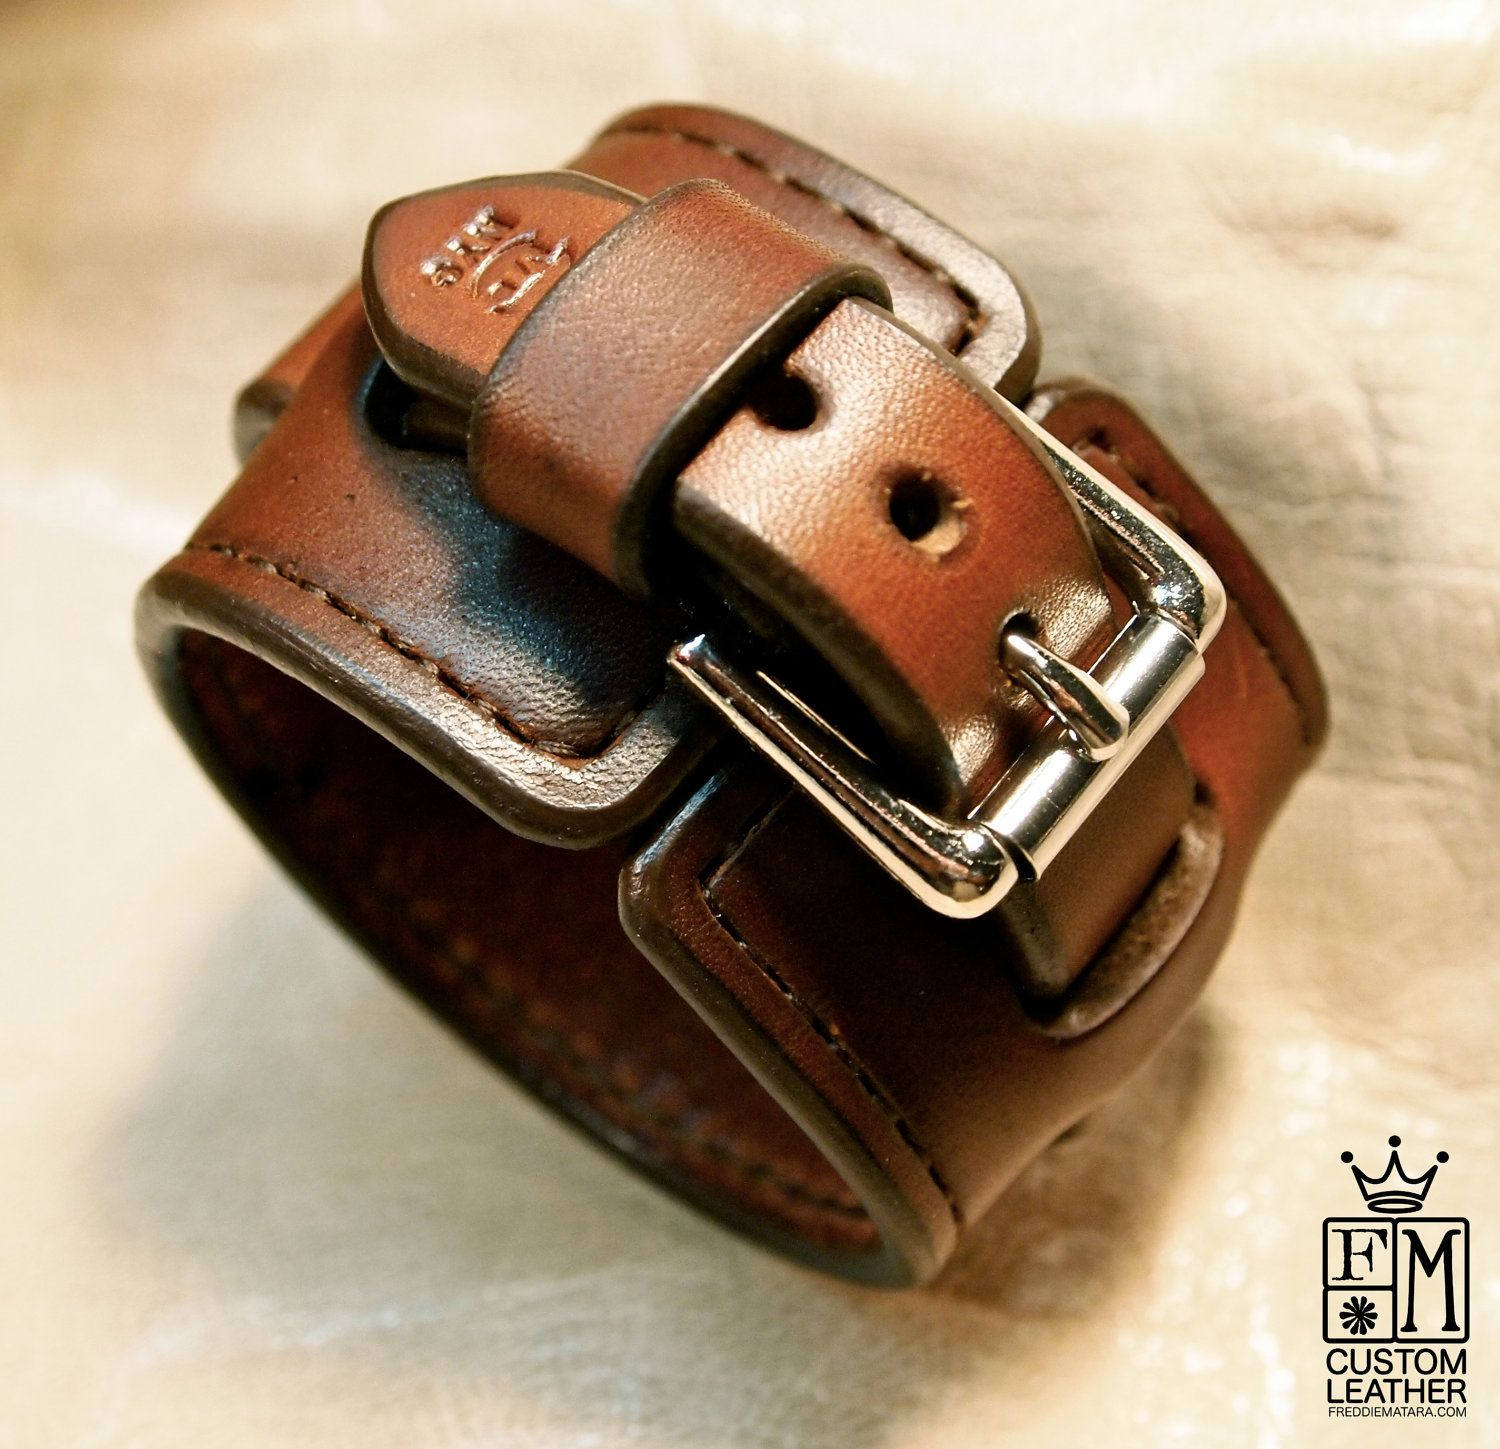 Leather cuff bracelet leather tooling pinterest leather cuffs